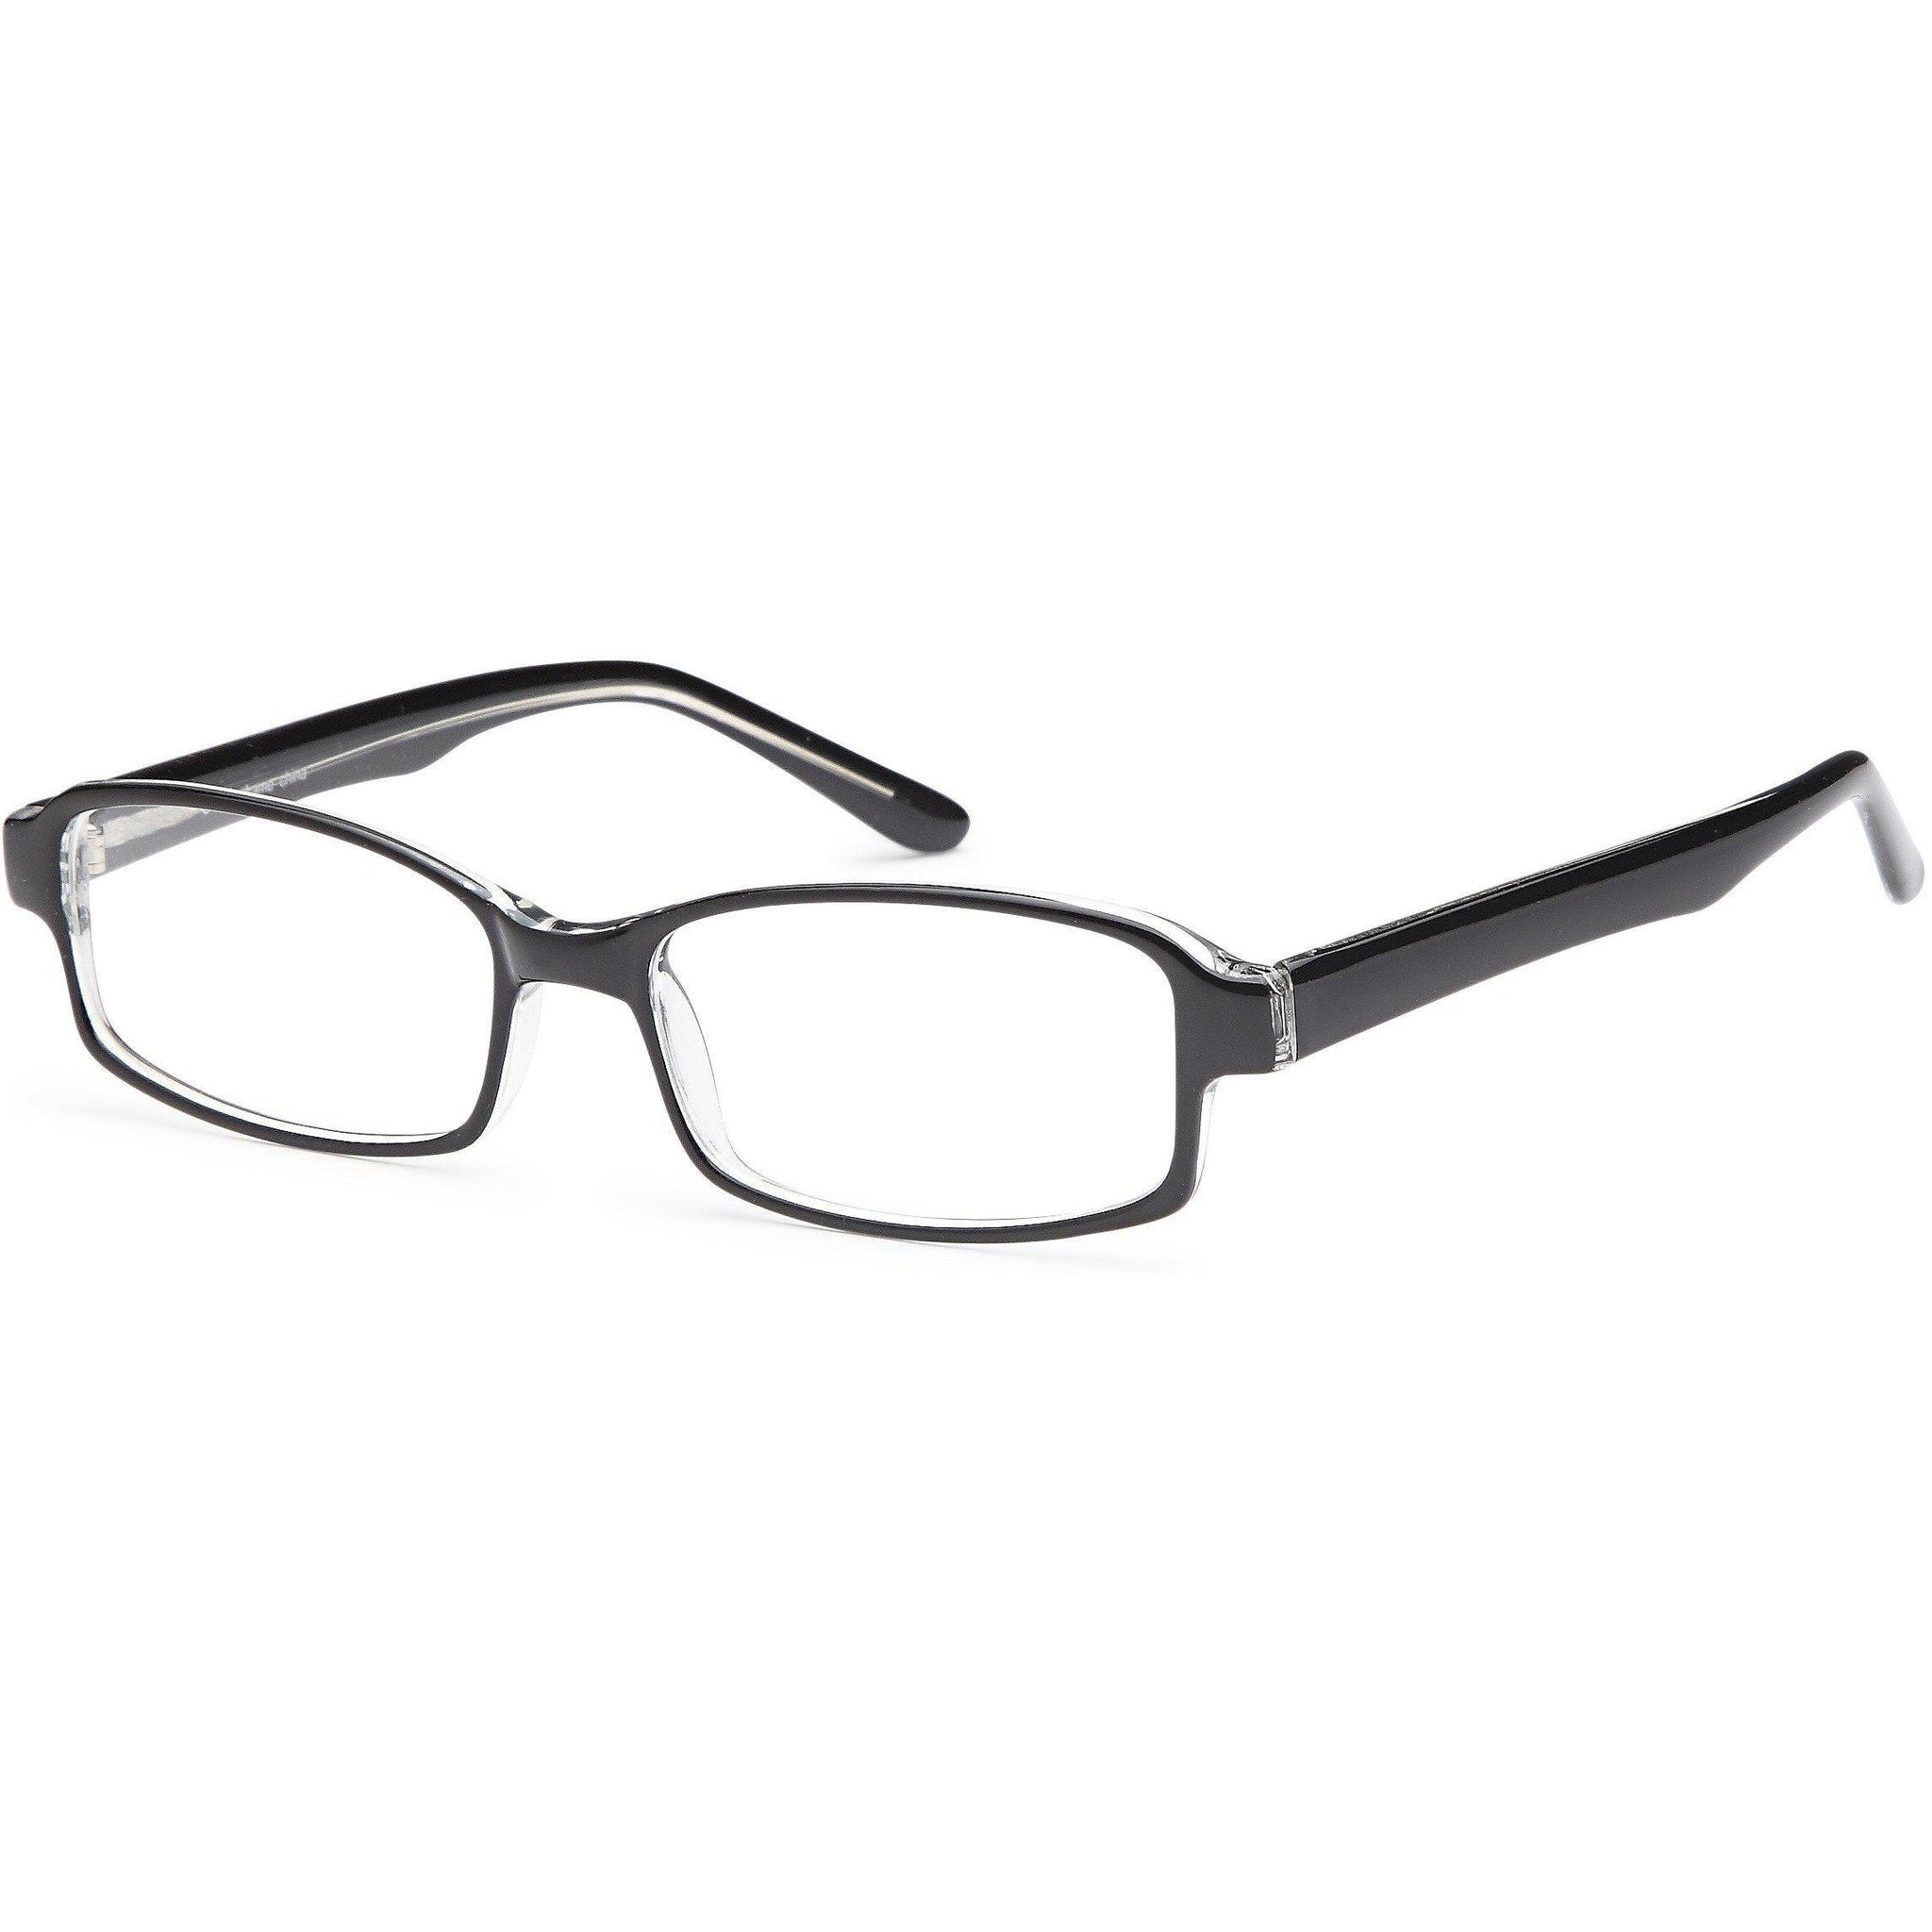 4U Prescription Glasses U 34 Optical Eyeglasses Frame - timetoshade